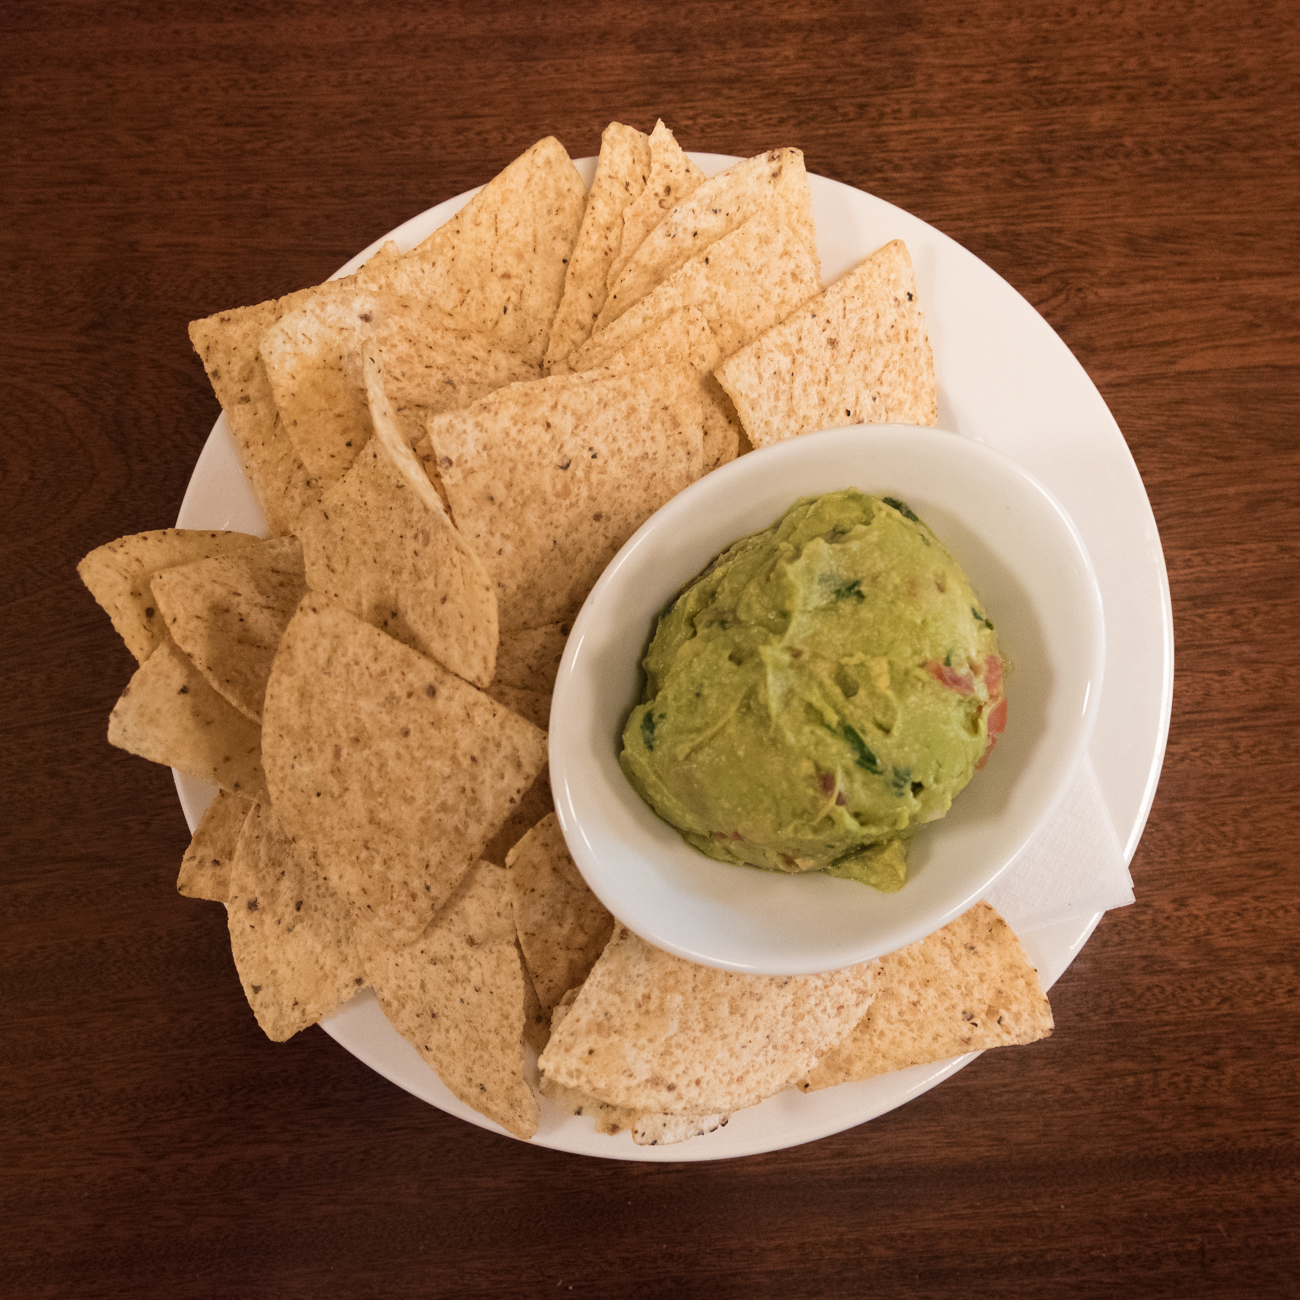 House guacamole and chips / Image: Phil Armstrong, Cincinnati Refined // Published: 6.6.17